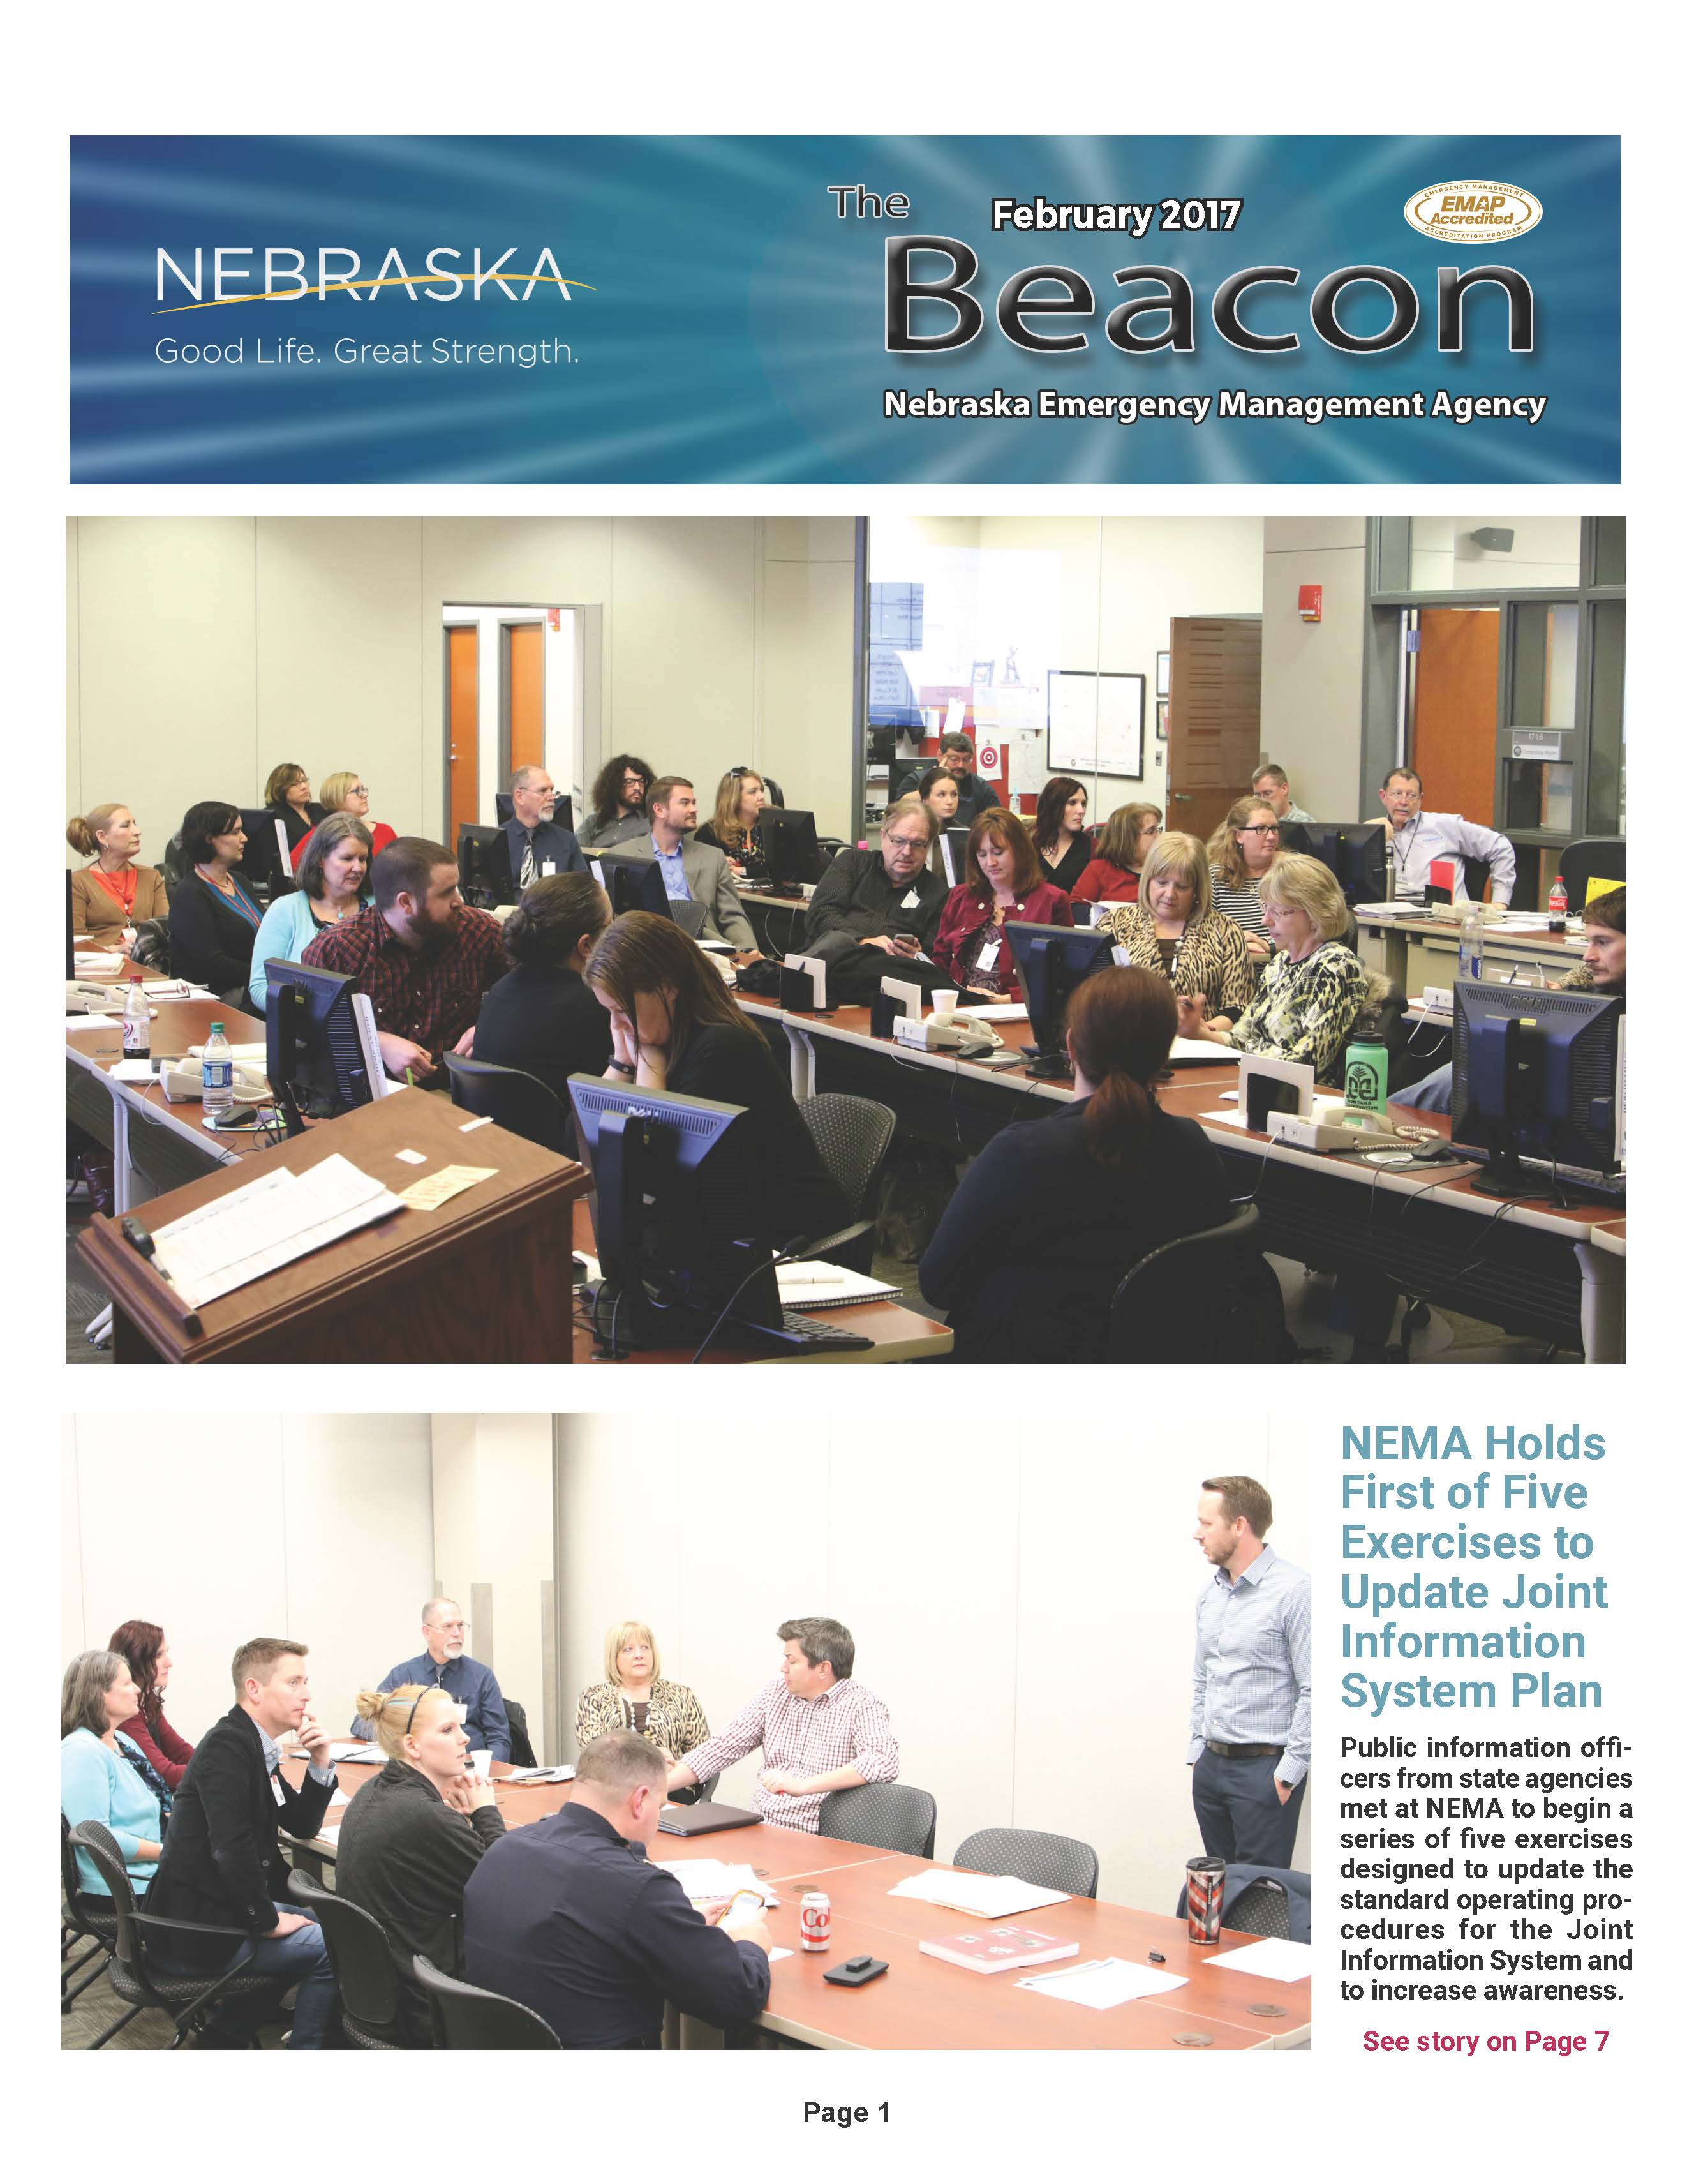 February 2017 Cover of the Beacon